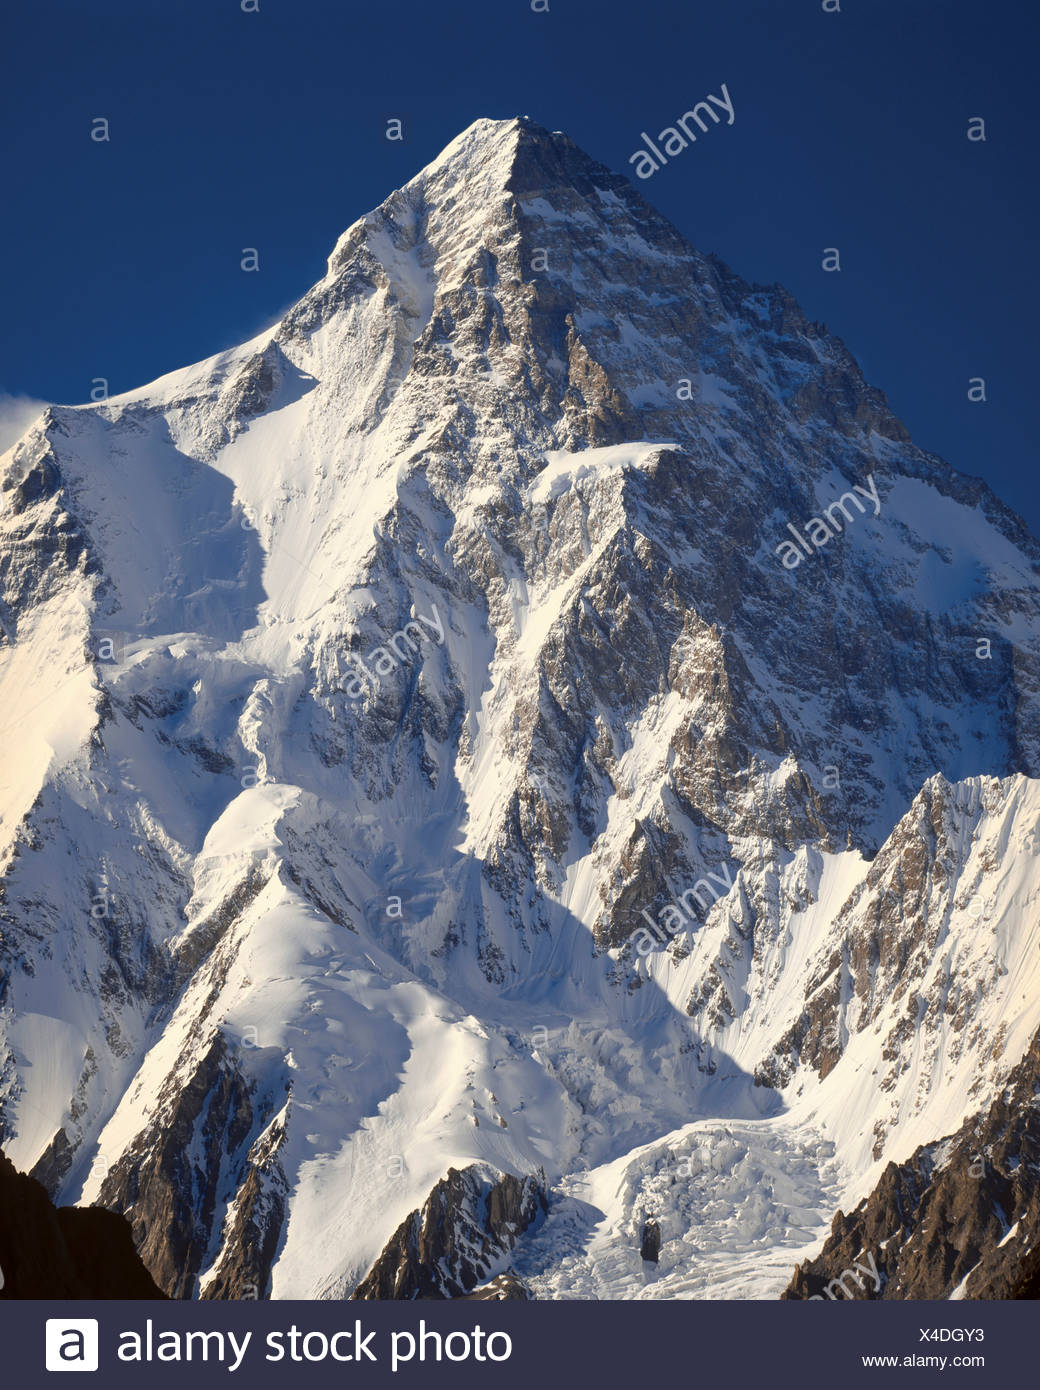 K2 The World S Second Highest Mountain Stock Photo Alamy